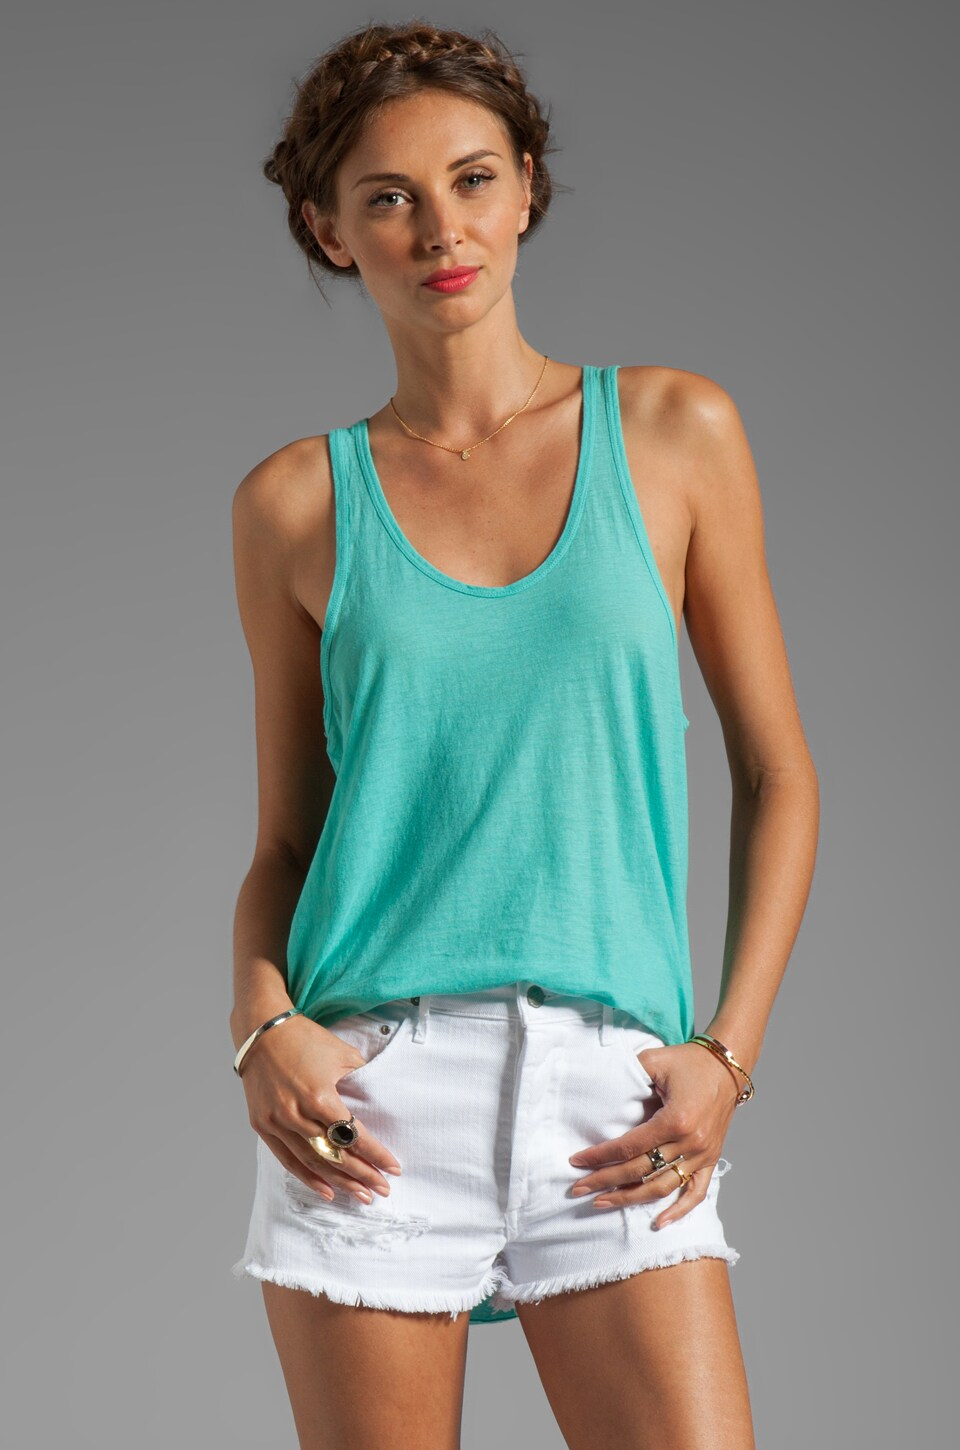 SUNDRY Racer Back Tank in Turquoise